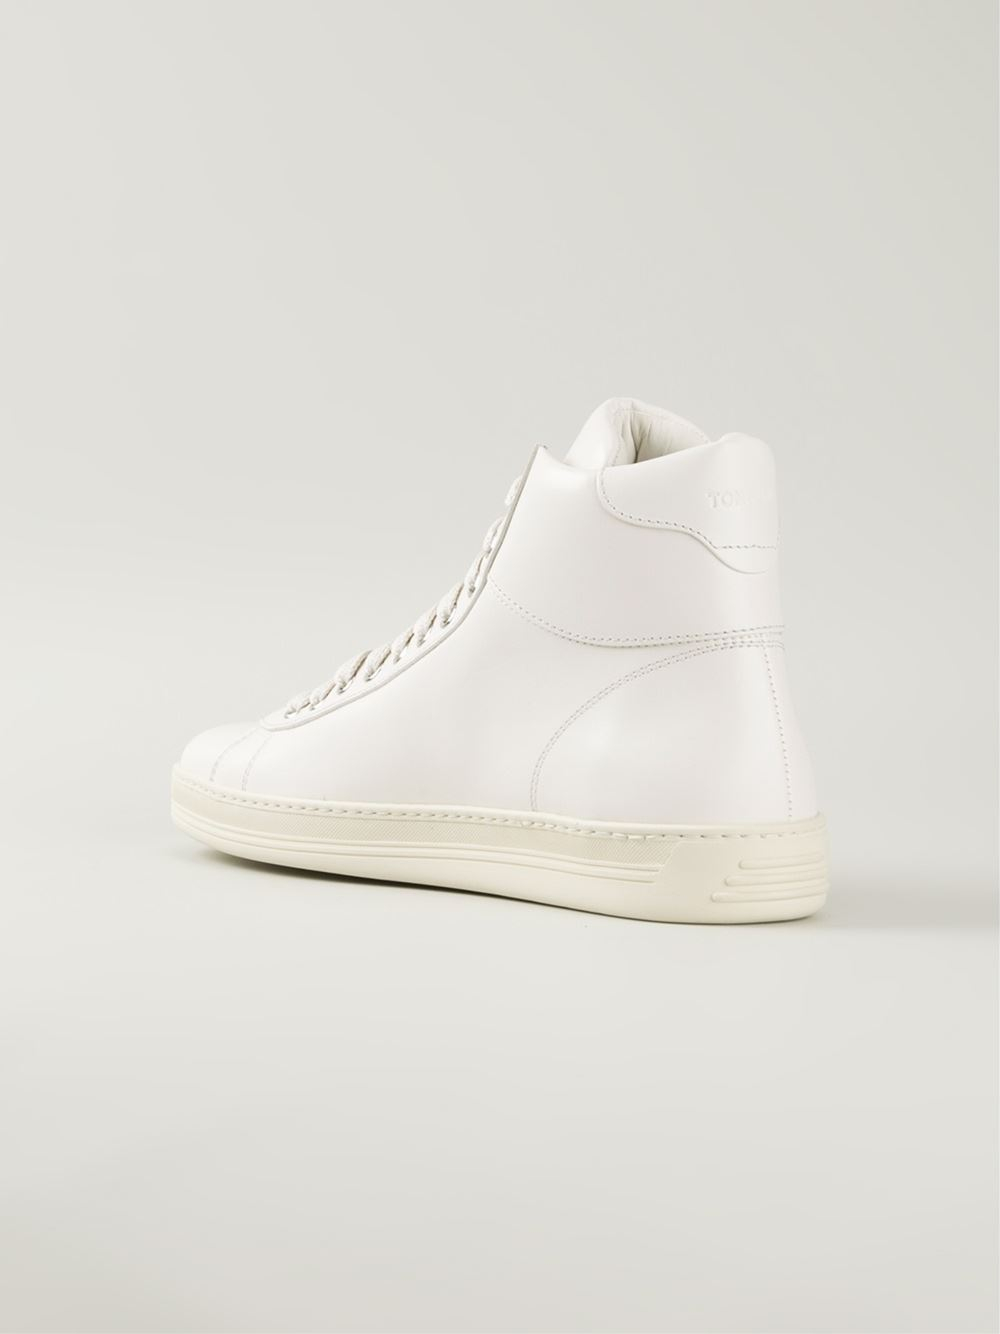 tom ford high top lace up sneakers in white lyst